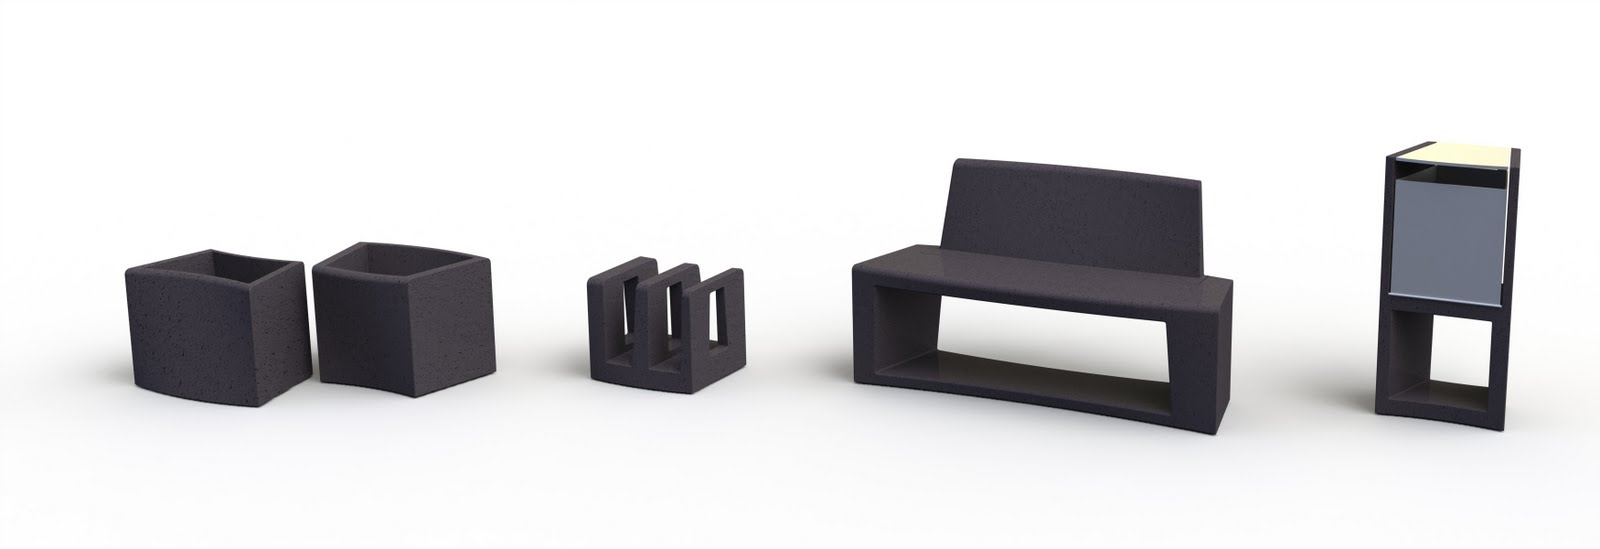 Modular urban furniture klaudia micz n silicate designer Urban home furniture online